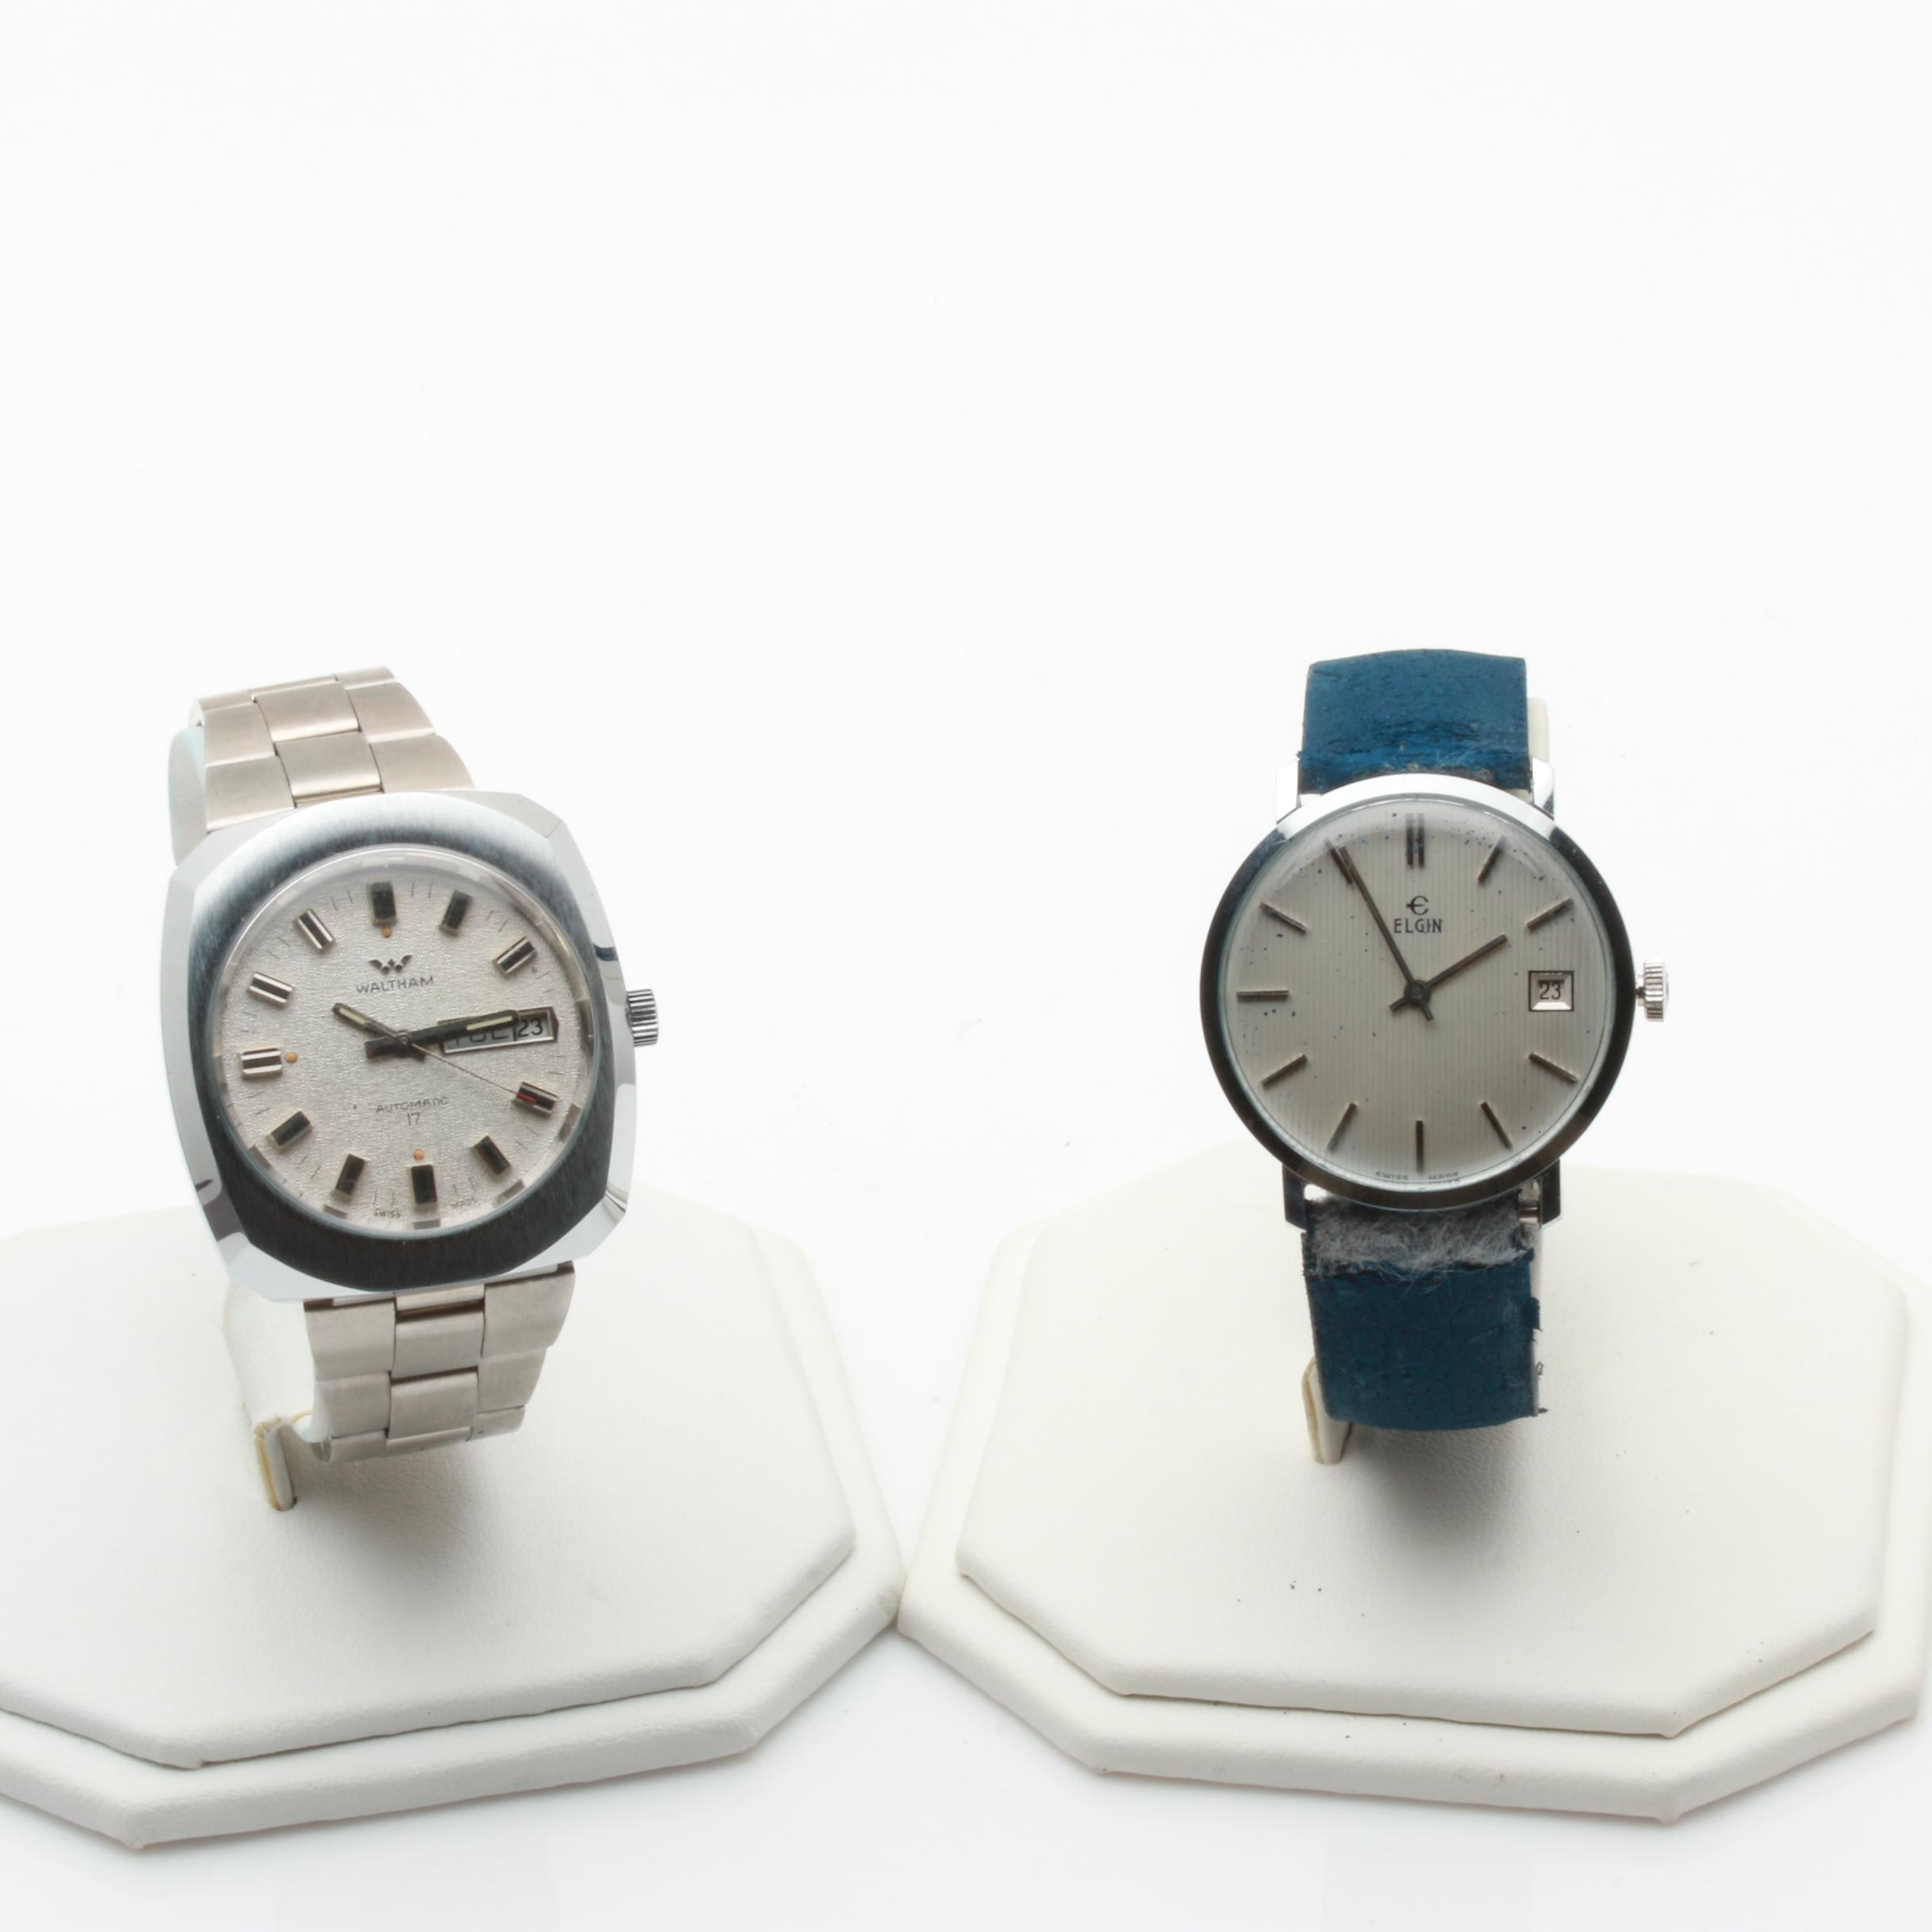 Elgin and Waltham Swiss Made Wristwatches